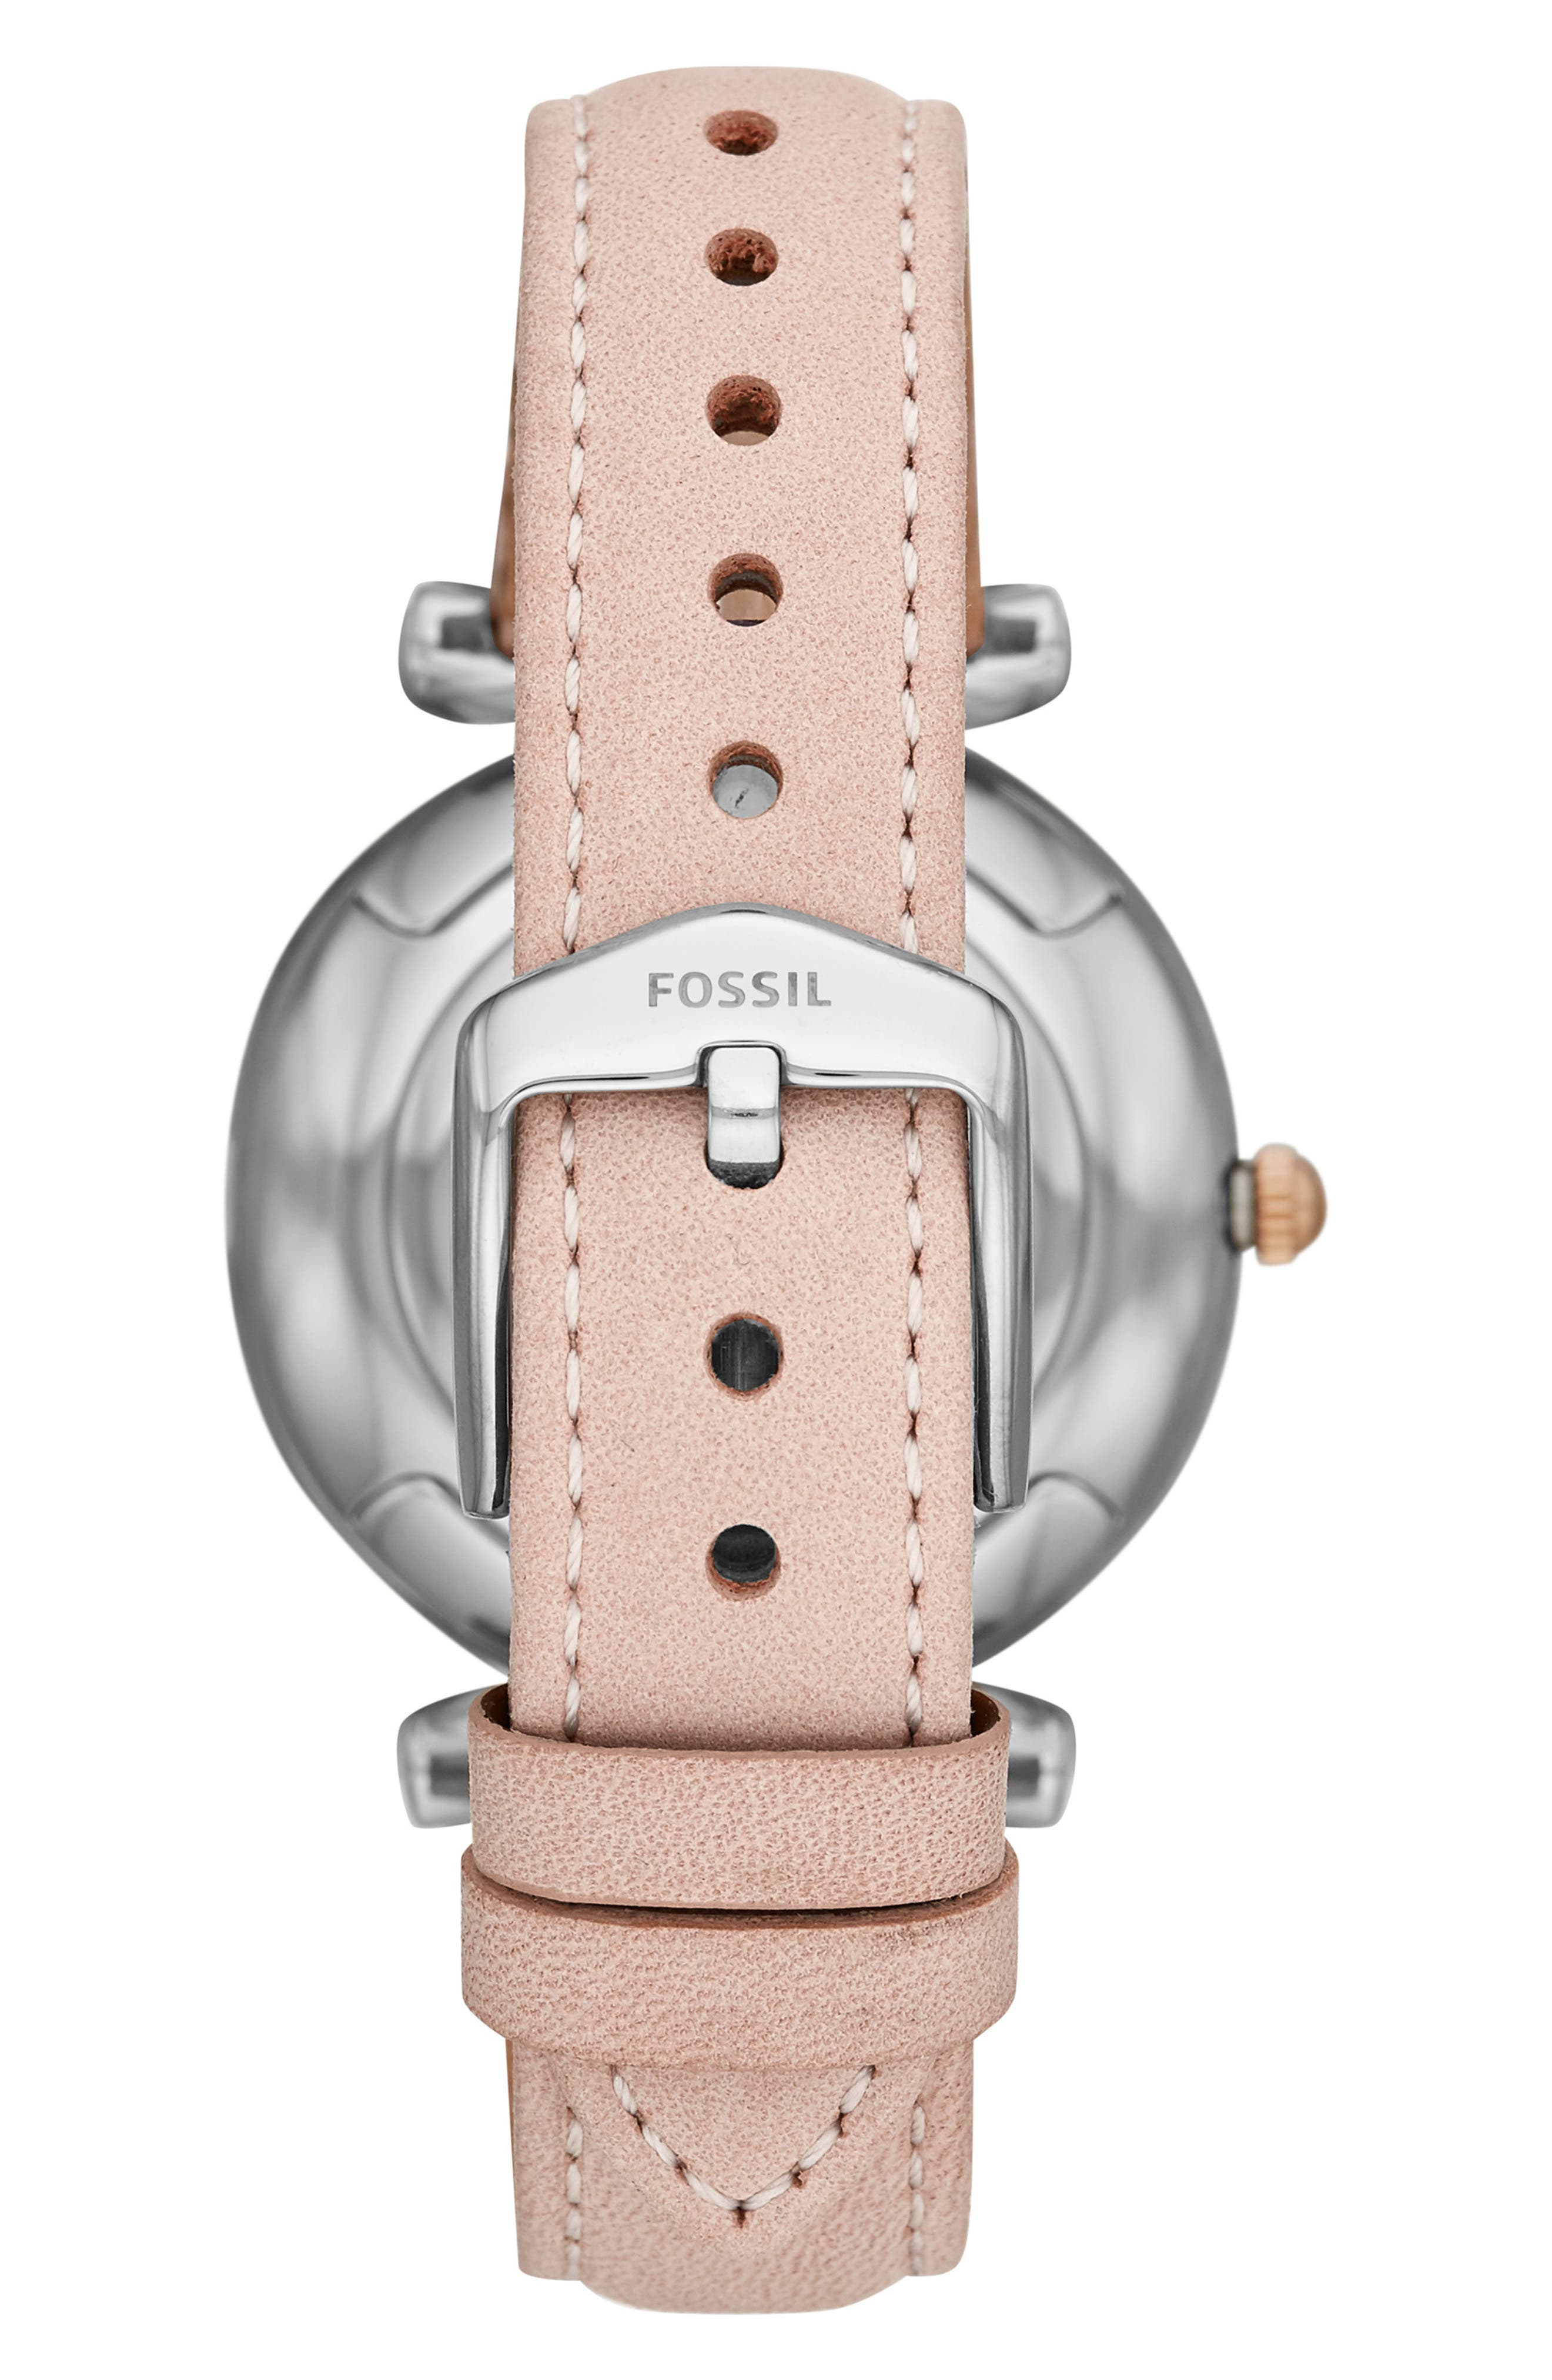 FOSSIL,                             Carlie Leather Strap Watch, 35mm,                             Alternate thumbnail 2, color,                             PINK/ SILVER/ ROSE GOLD